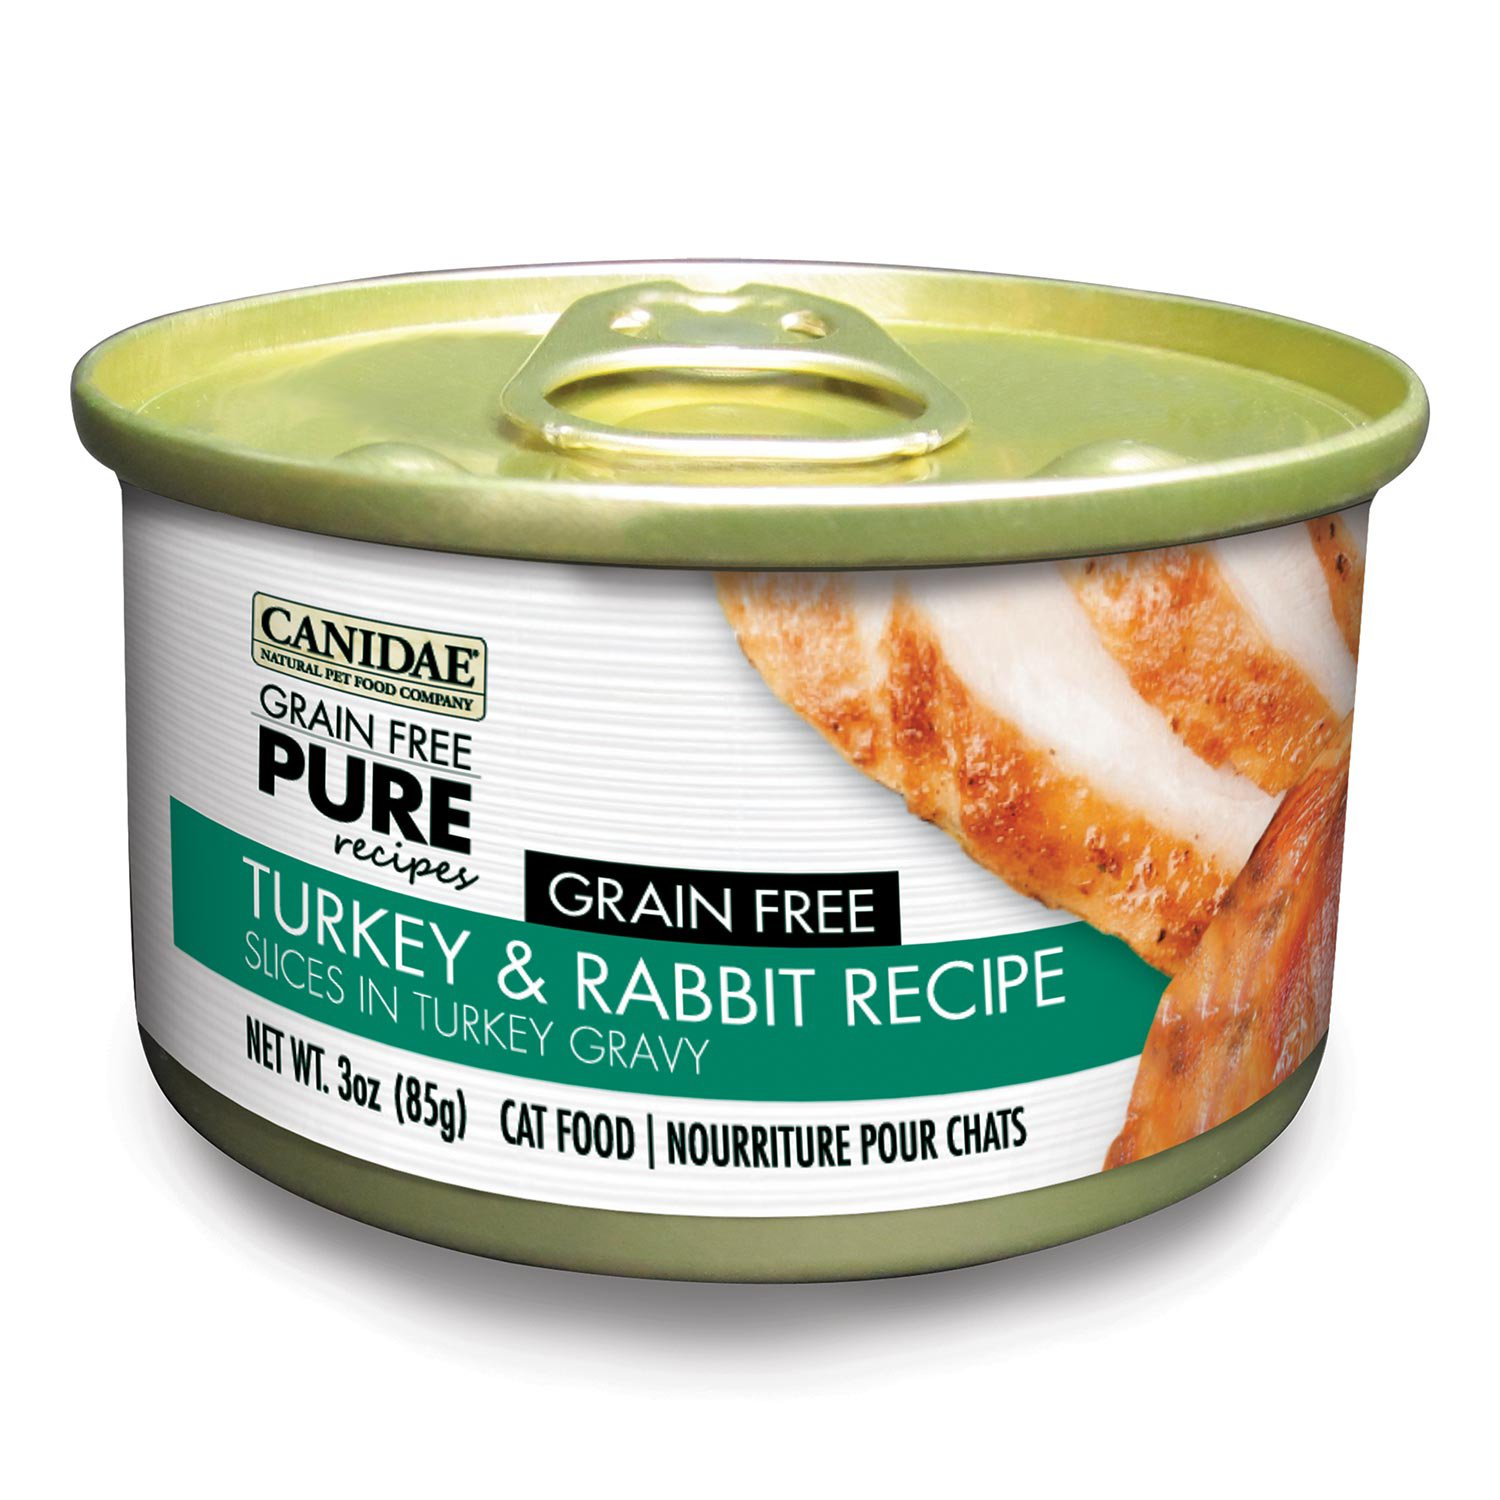 Canidae Grain Free Pure Recipes Turkey & Rabbit Canned Cat Food